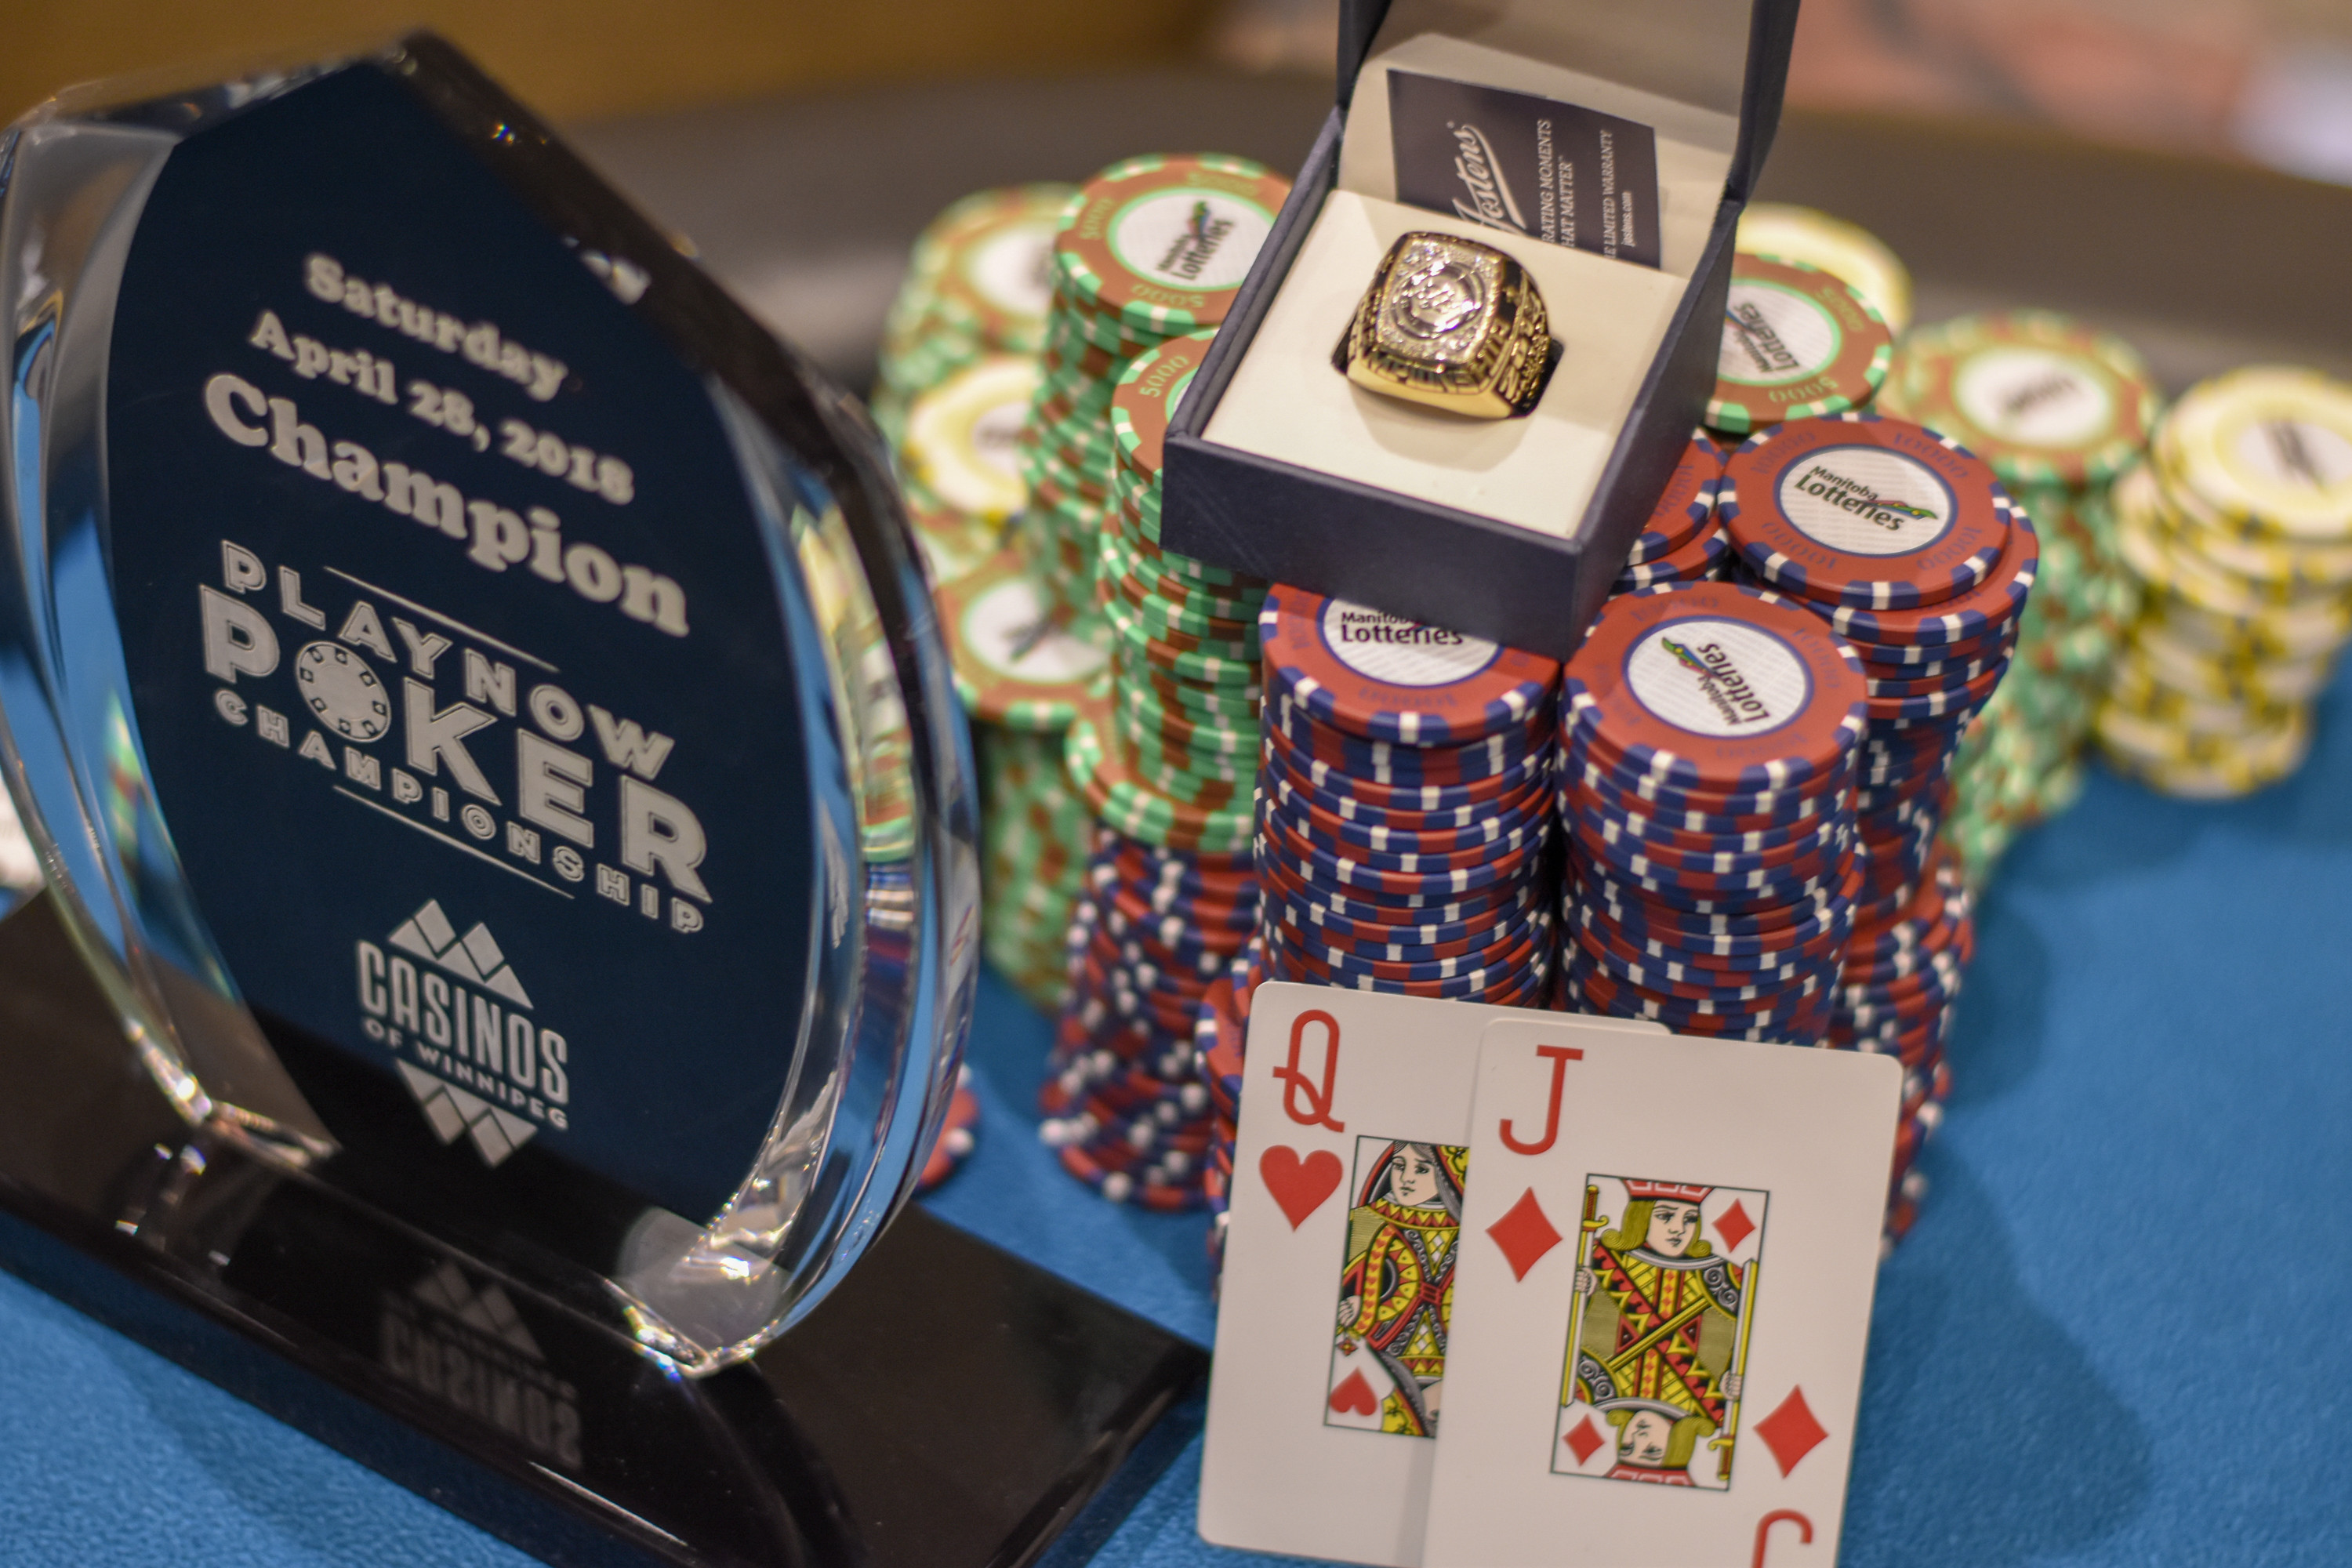 Ahn Phan Leads After Day 1 of PNPC Main Event - PokerNews